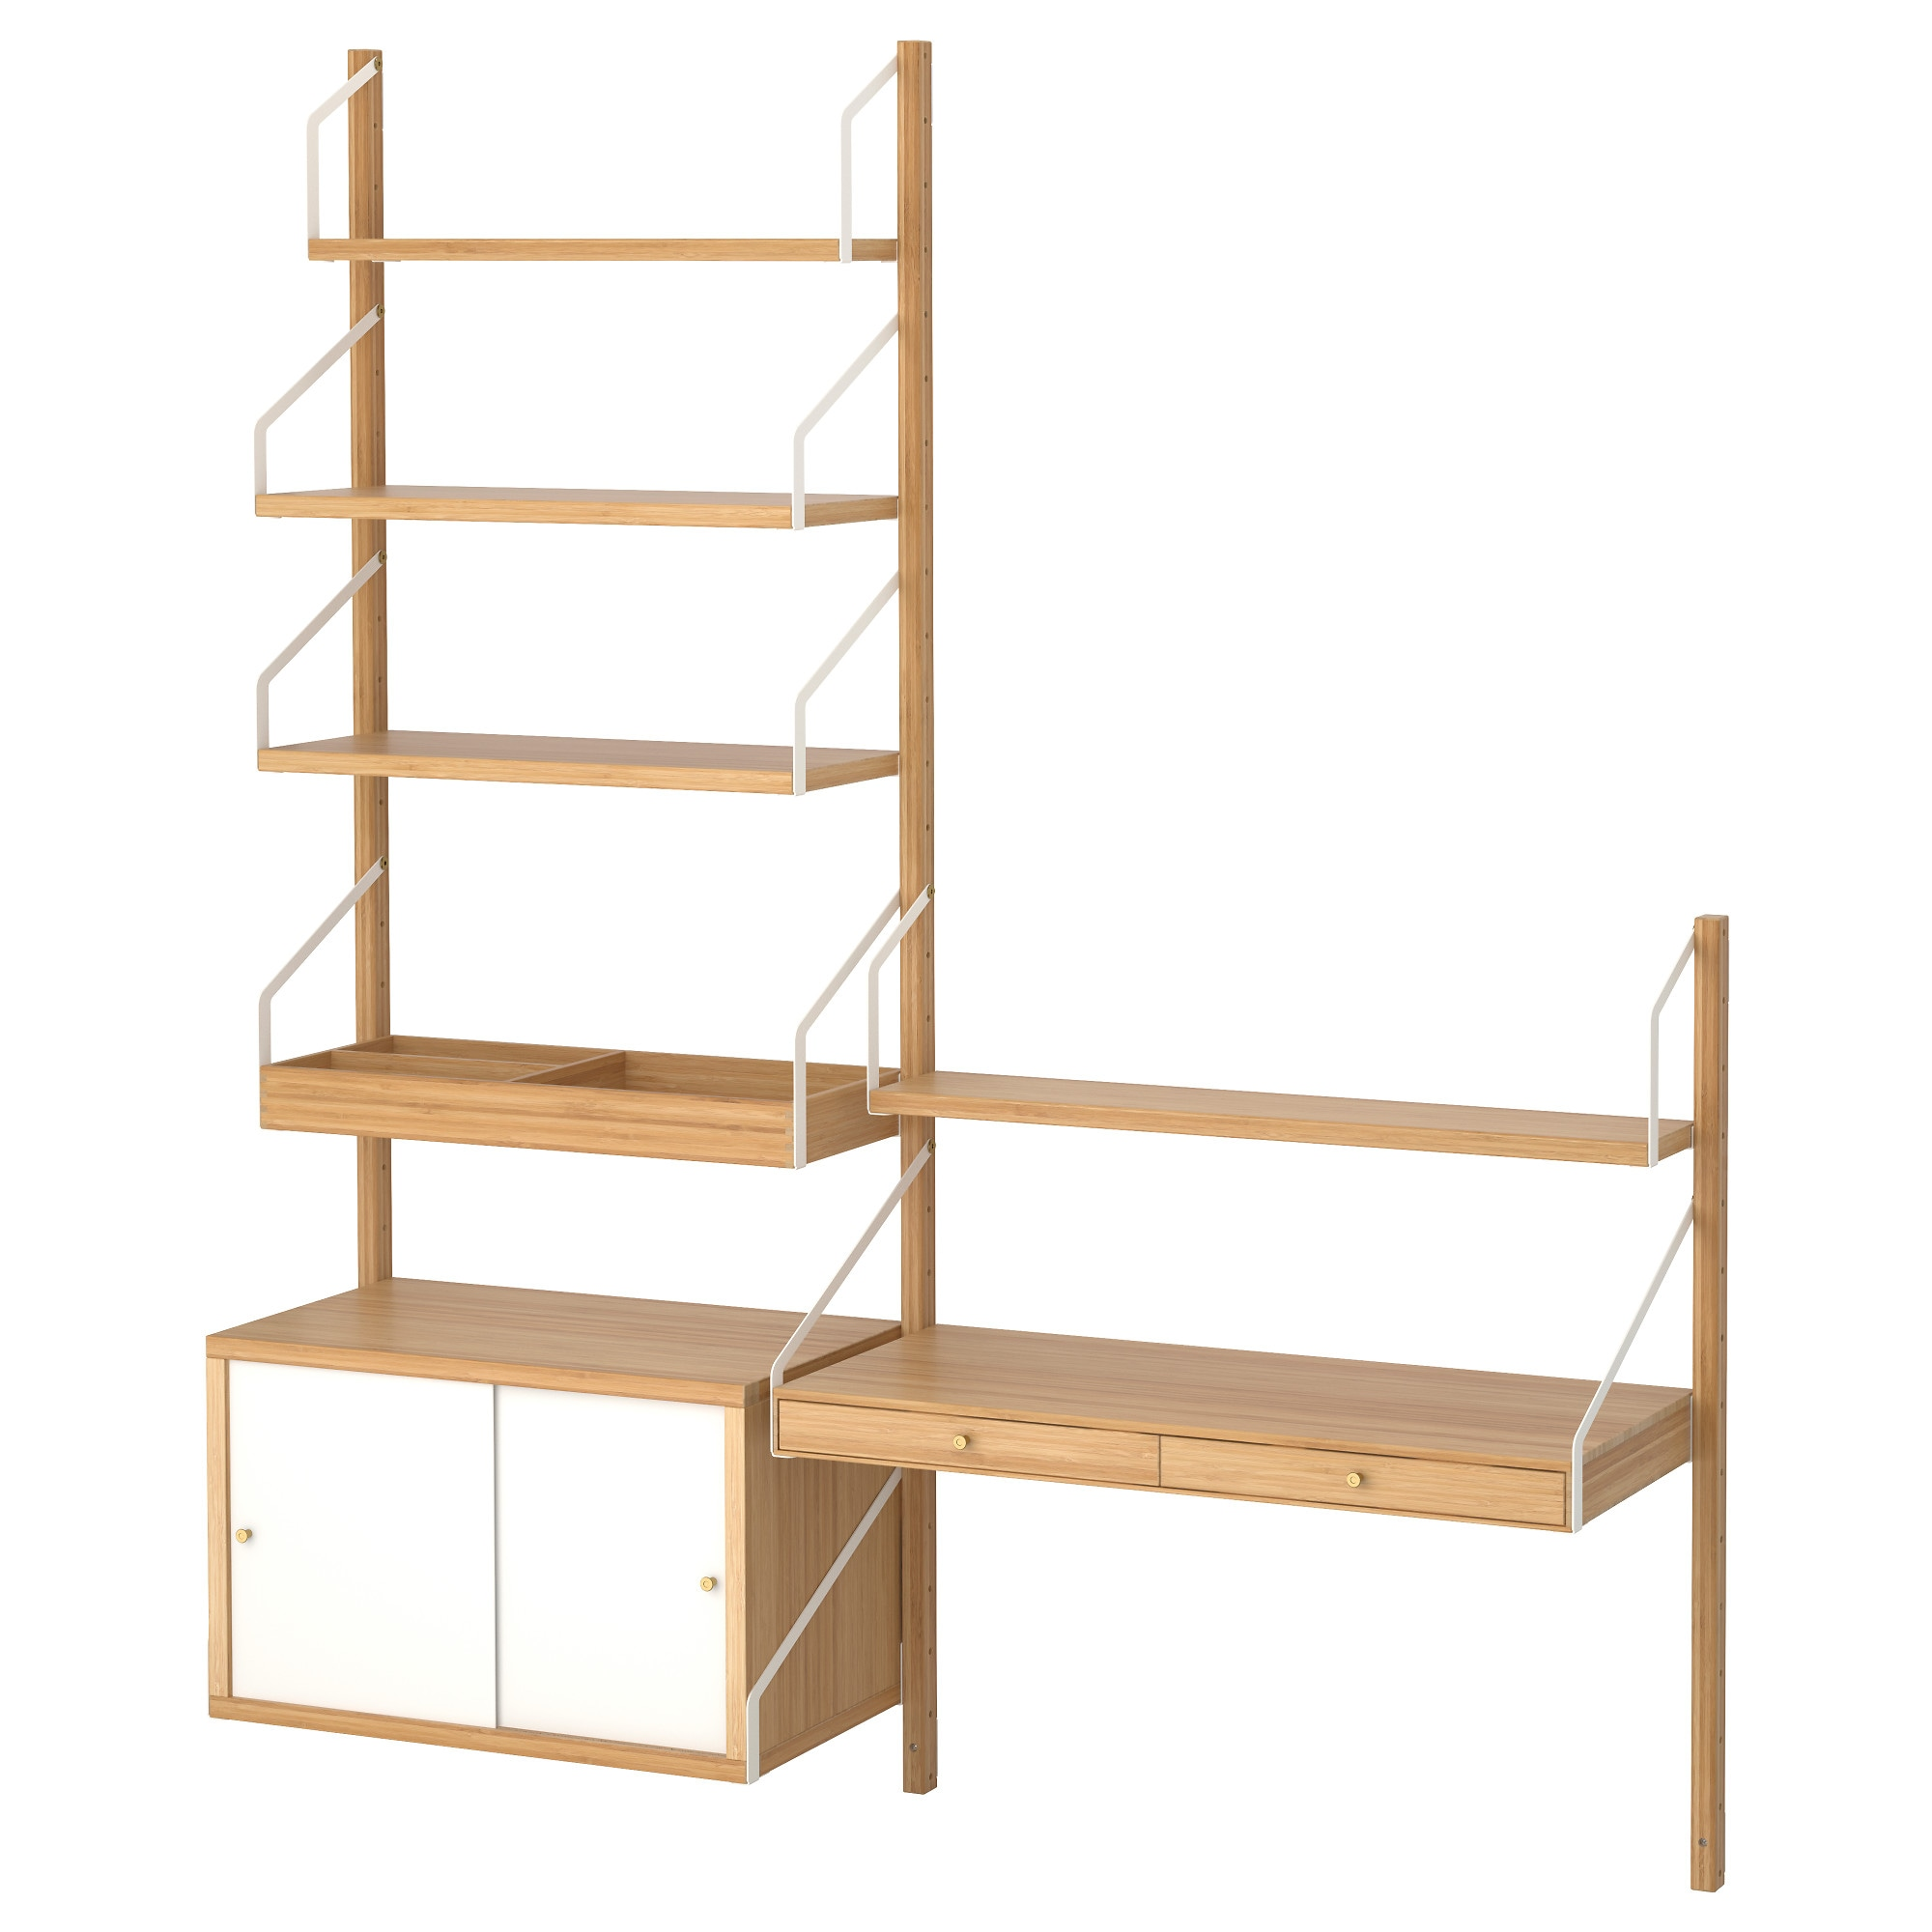 SVALN S wall mounted storage combination  bamboo  white Width  59   Depth. Shelves   Shelving Units   IKEA